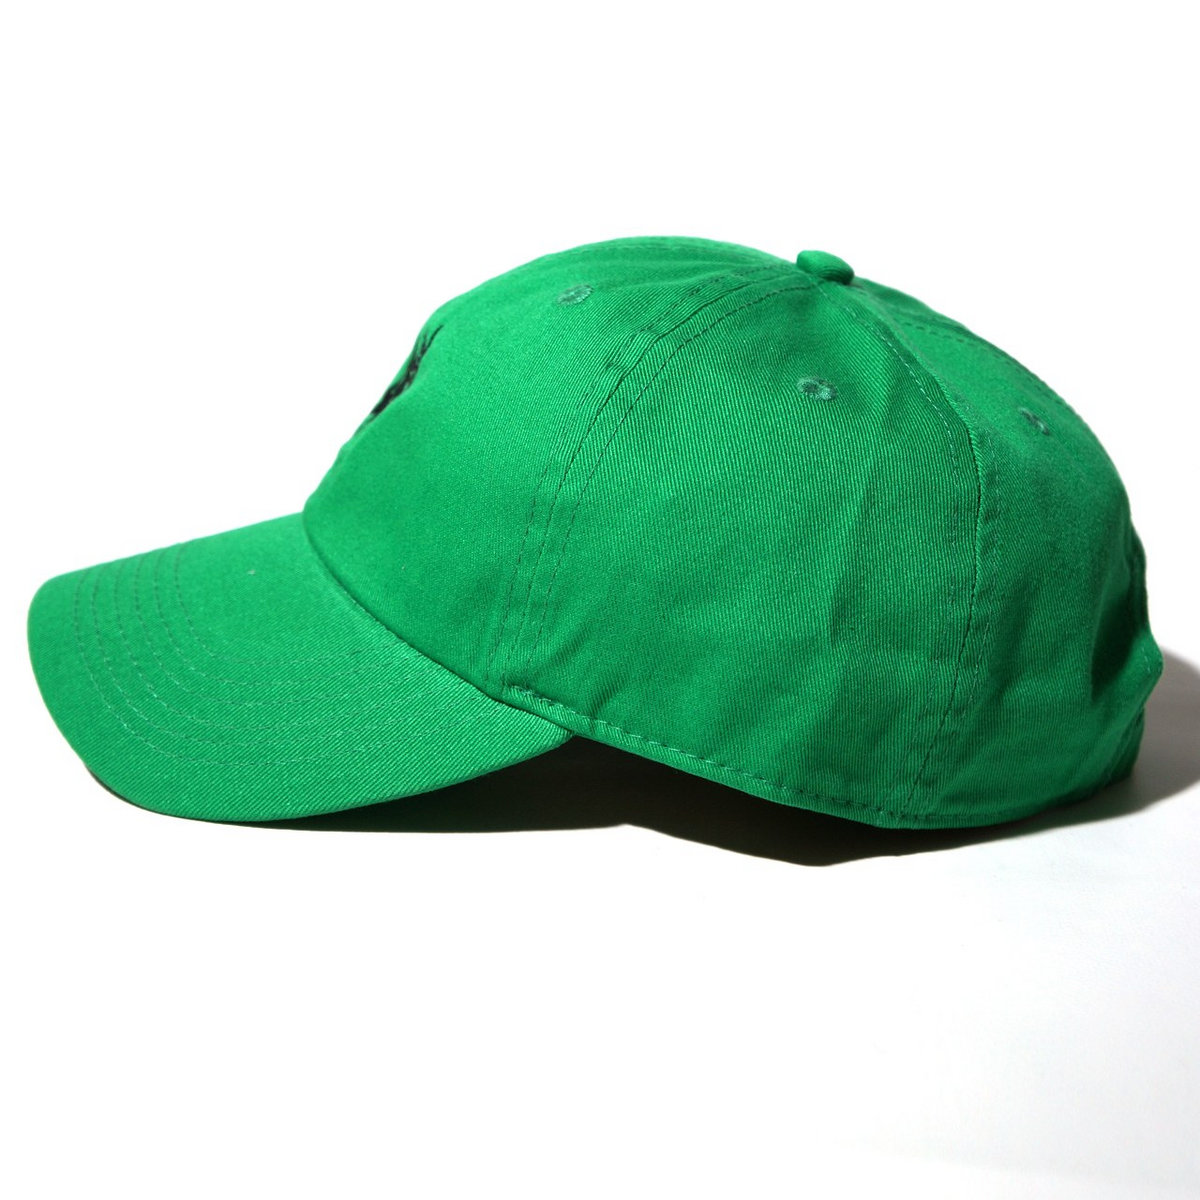 daa466cde4c ... SETE STAR SEPT Cotton Cap (Newhattan 1425)-Kelly Green photo ...